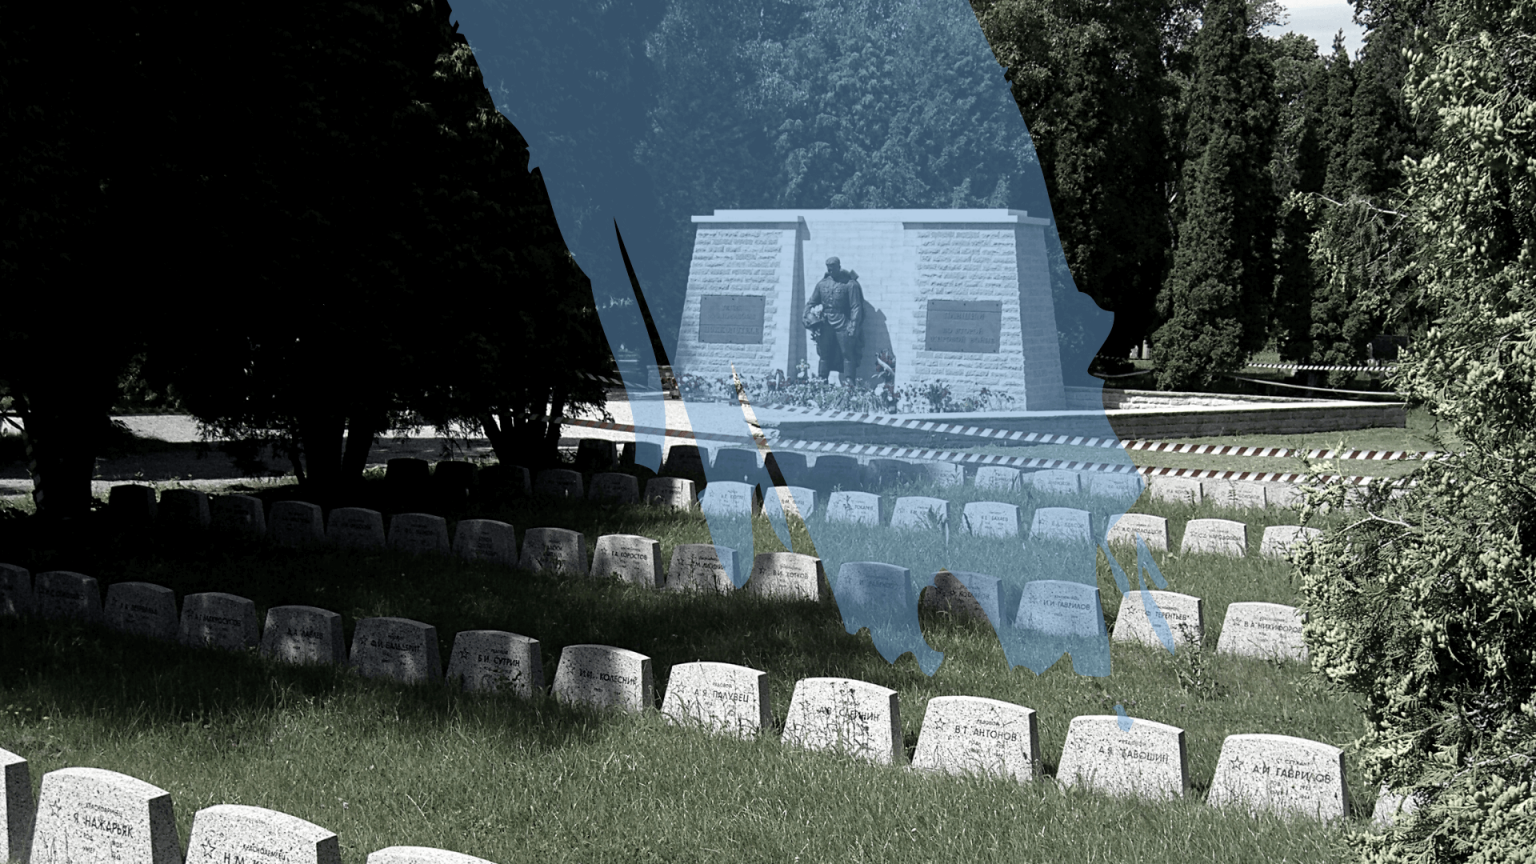 The bronze soldier statue at its new location, the Tallinn Military Cemetery. The image has been edited with a translucent splash of blue paint across the statue.